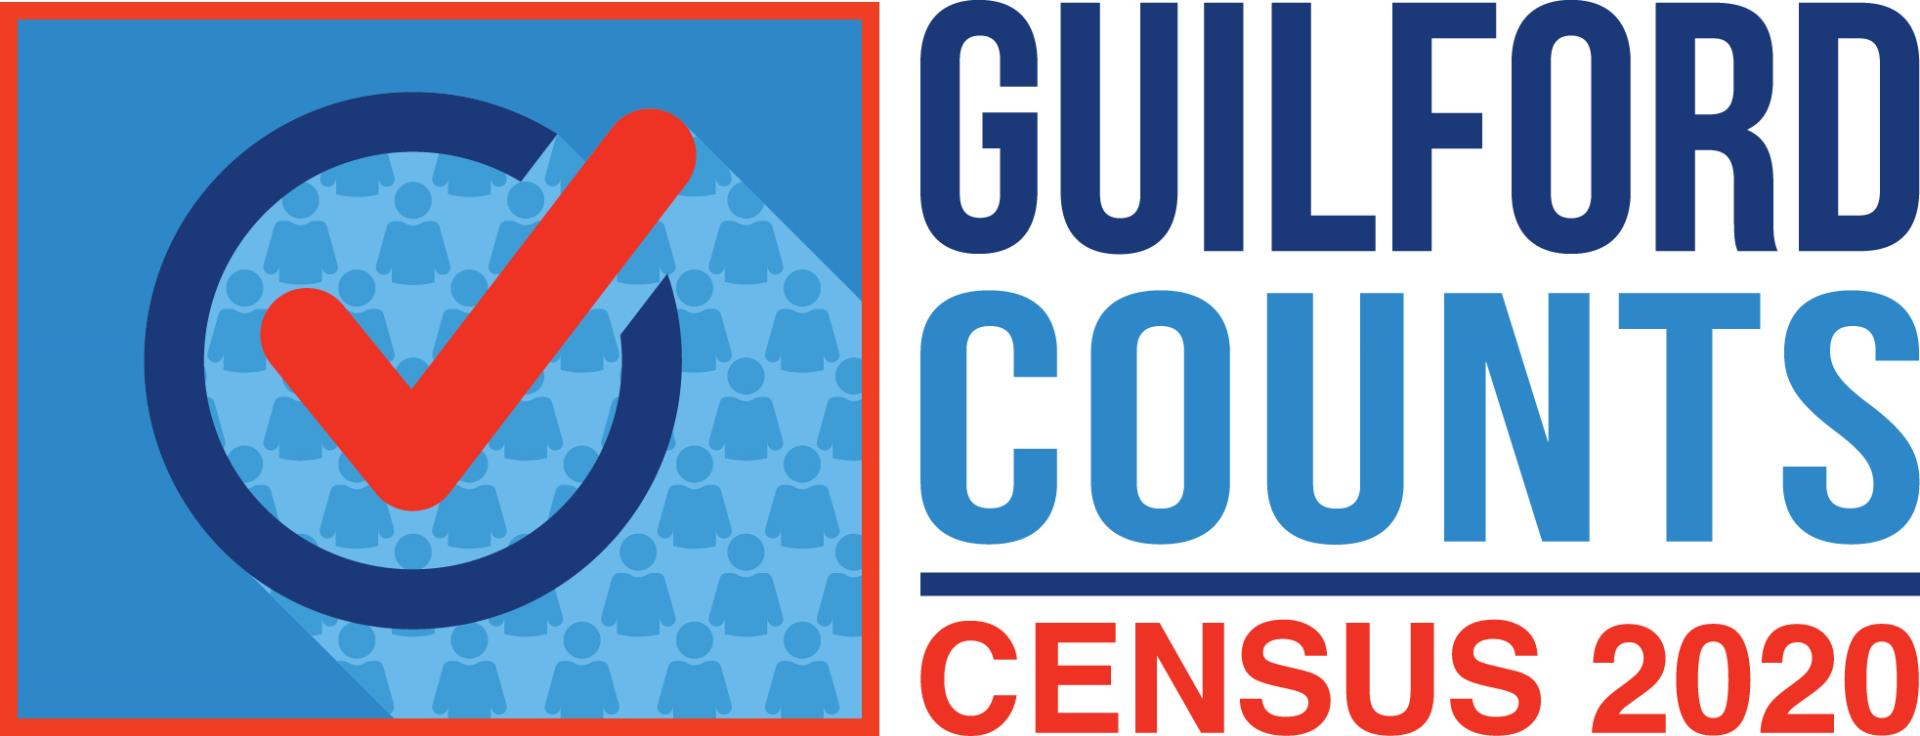 GuilfordCounts 2020